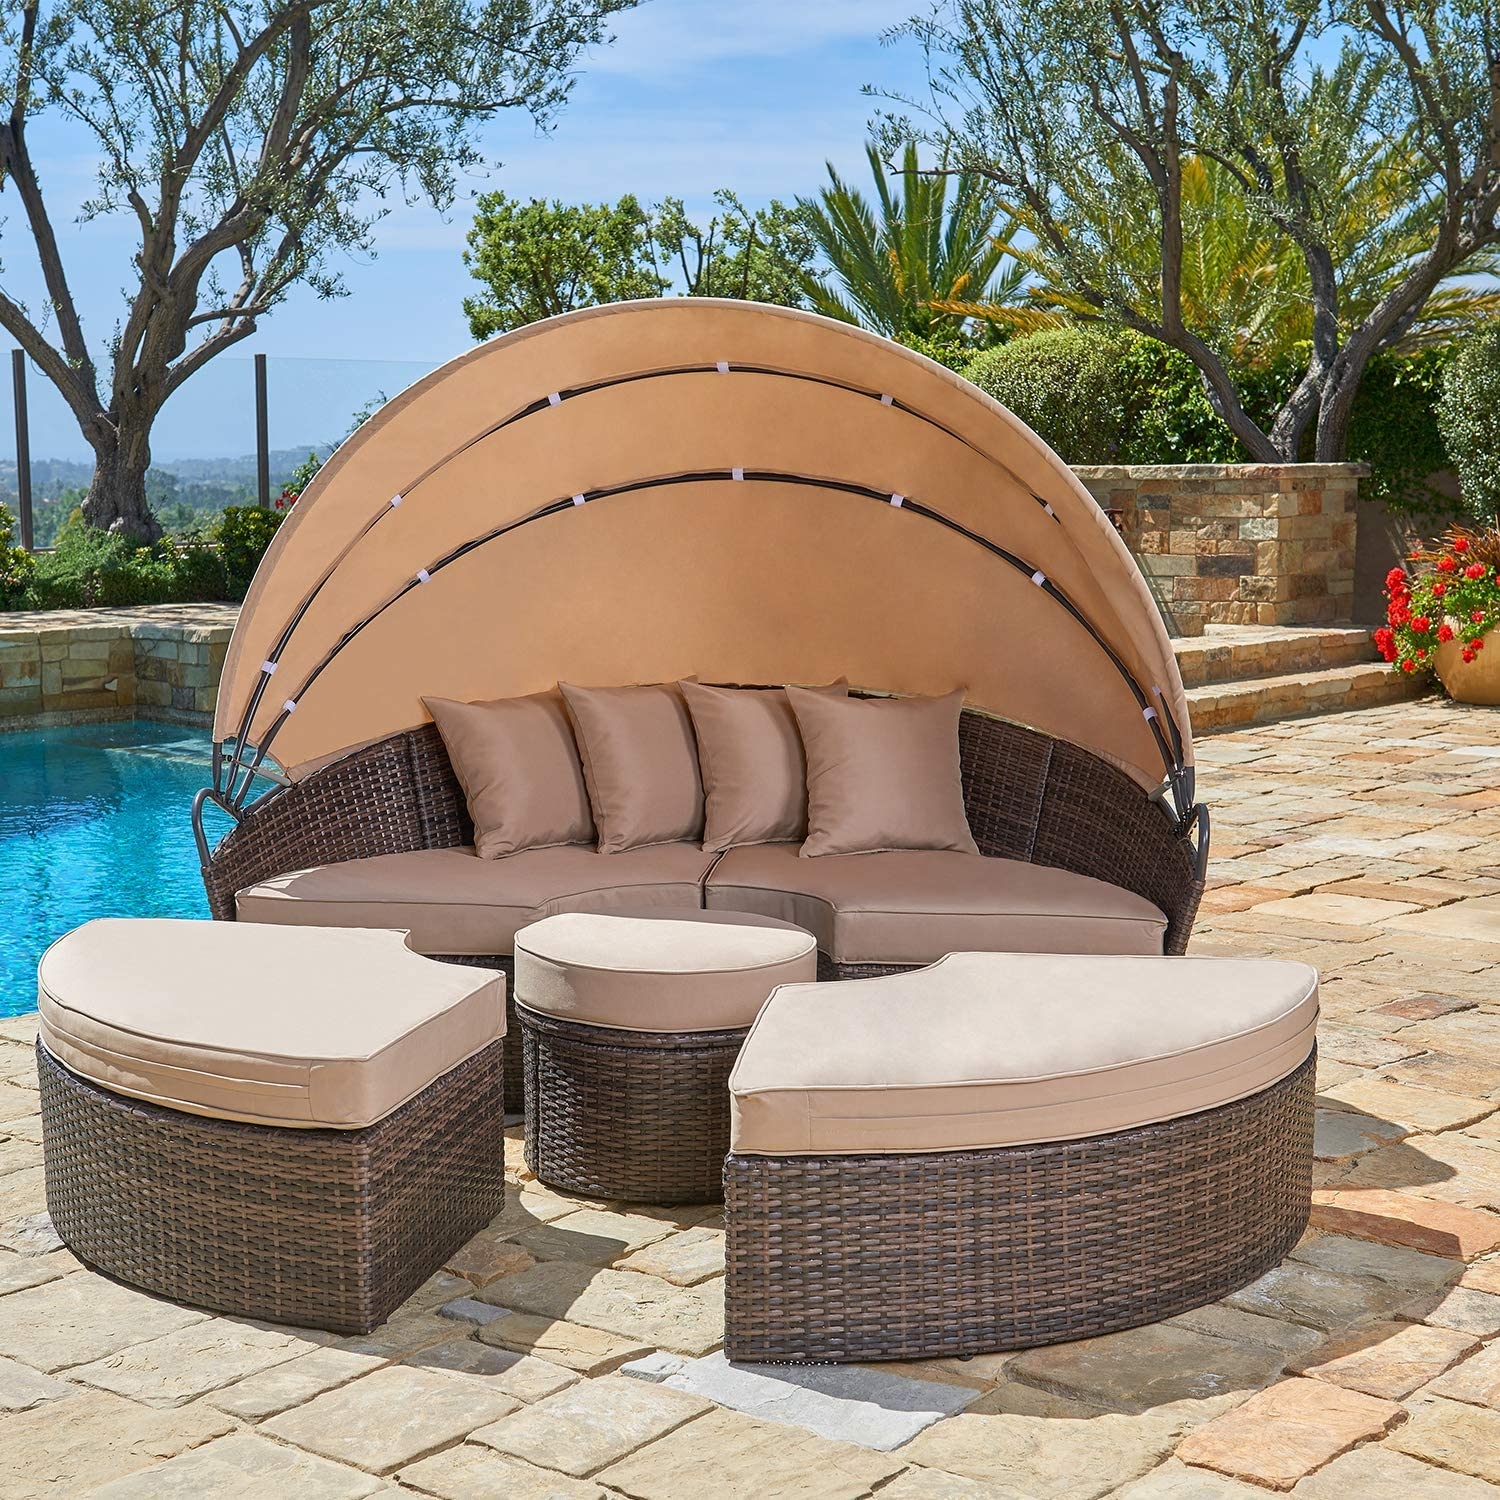 SUNCROWN Outdoor Patio Round Free shipping / New Daybed with Bro Bargain sale Canopy Retractable